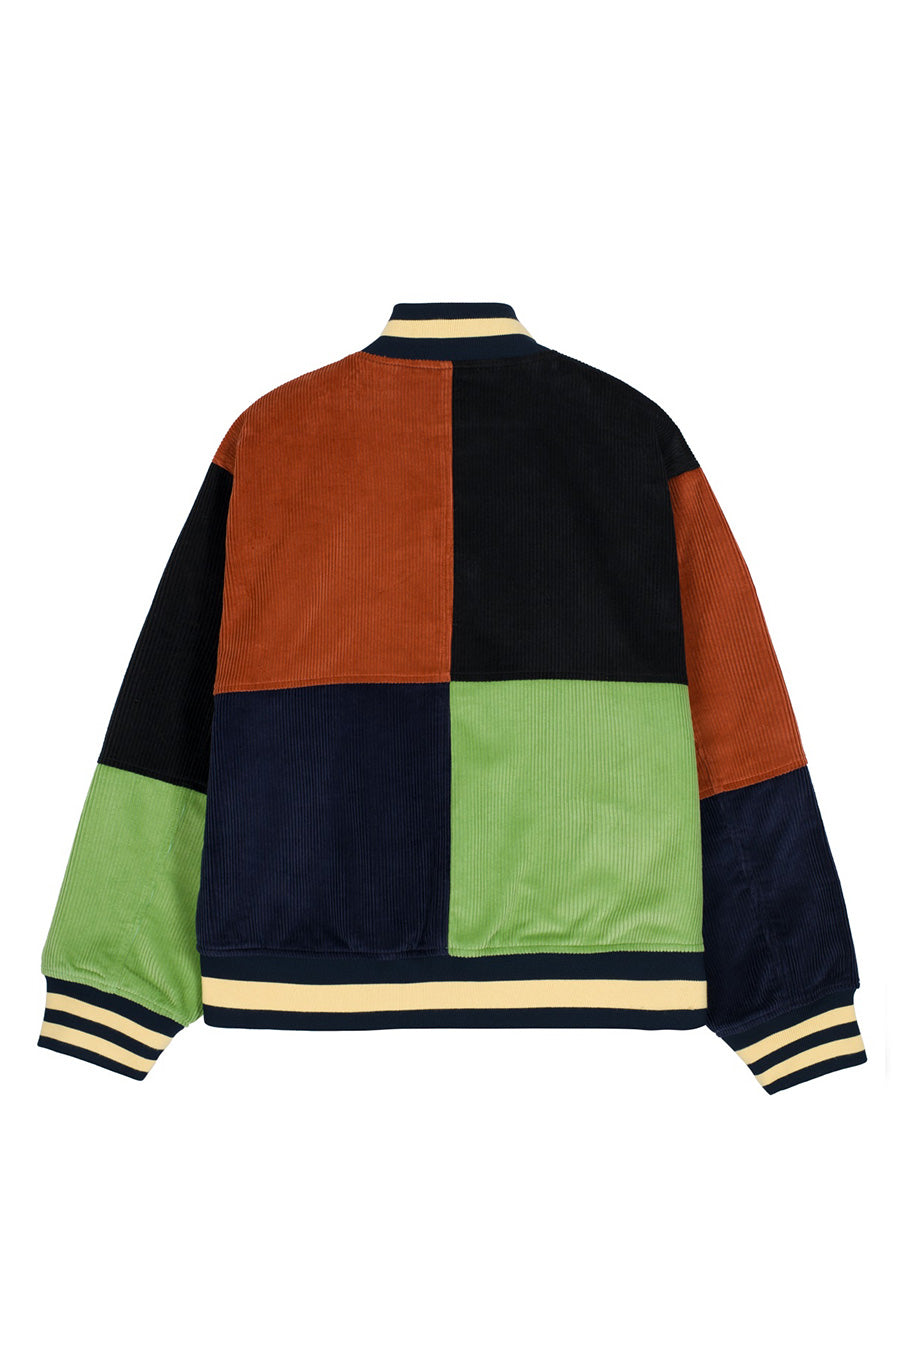 Brain Dead - Jacquard Patchwork Letterman Jacket | 1032 SPACE